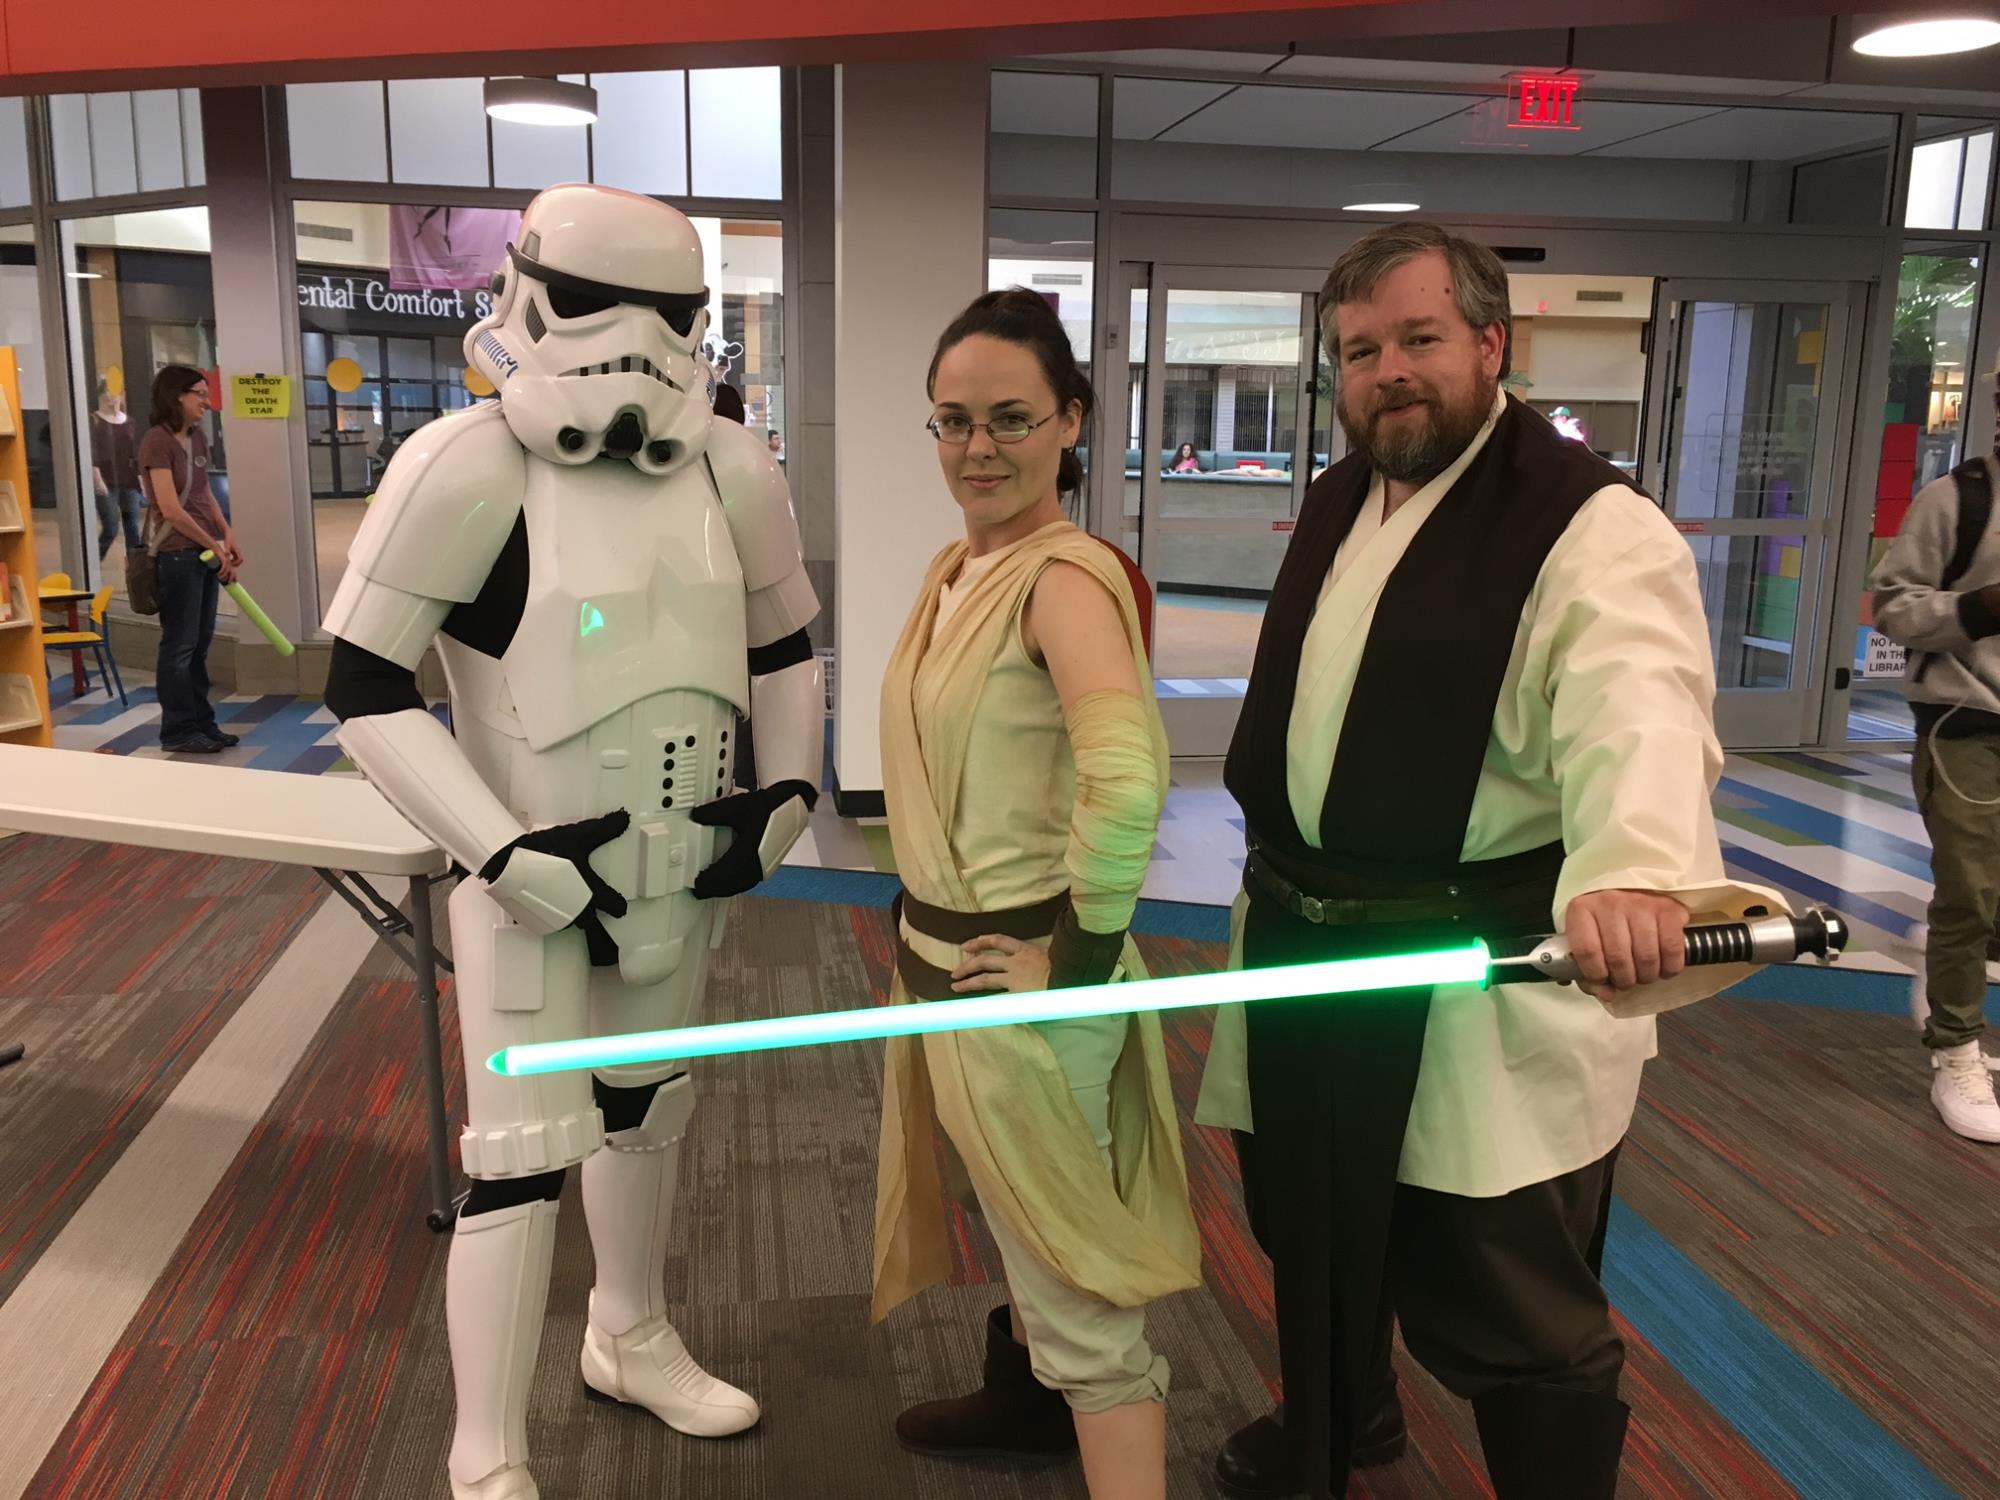 Lib-Con Attendees dressed as Rey, Luke Skywalker, and a Stormtrooper from Star Wars